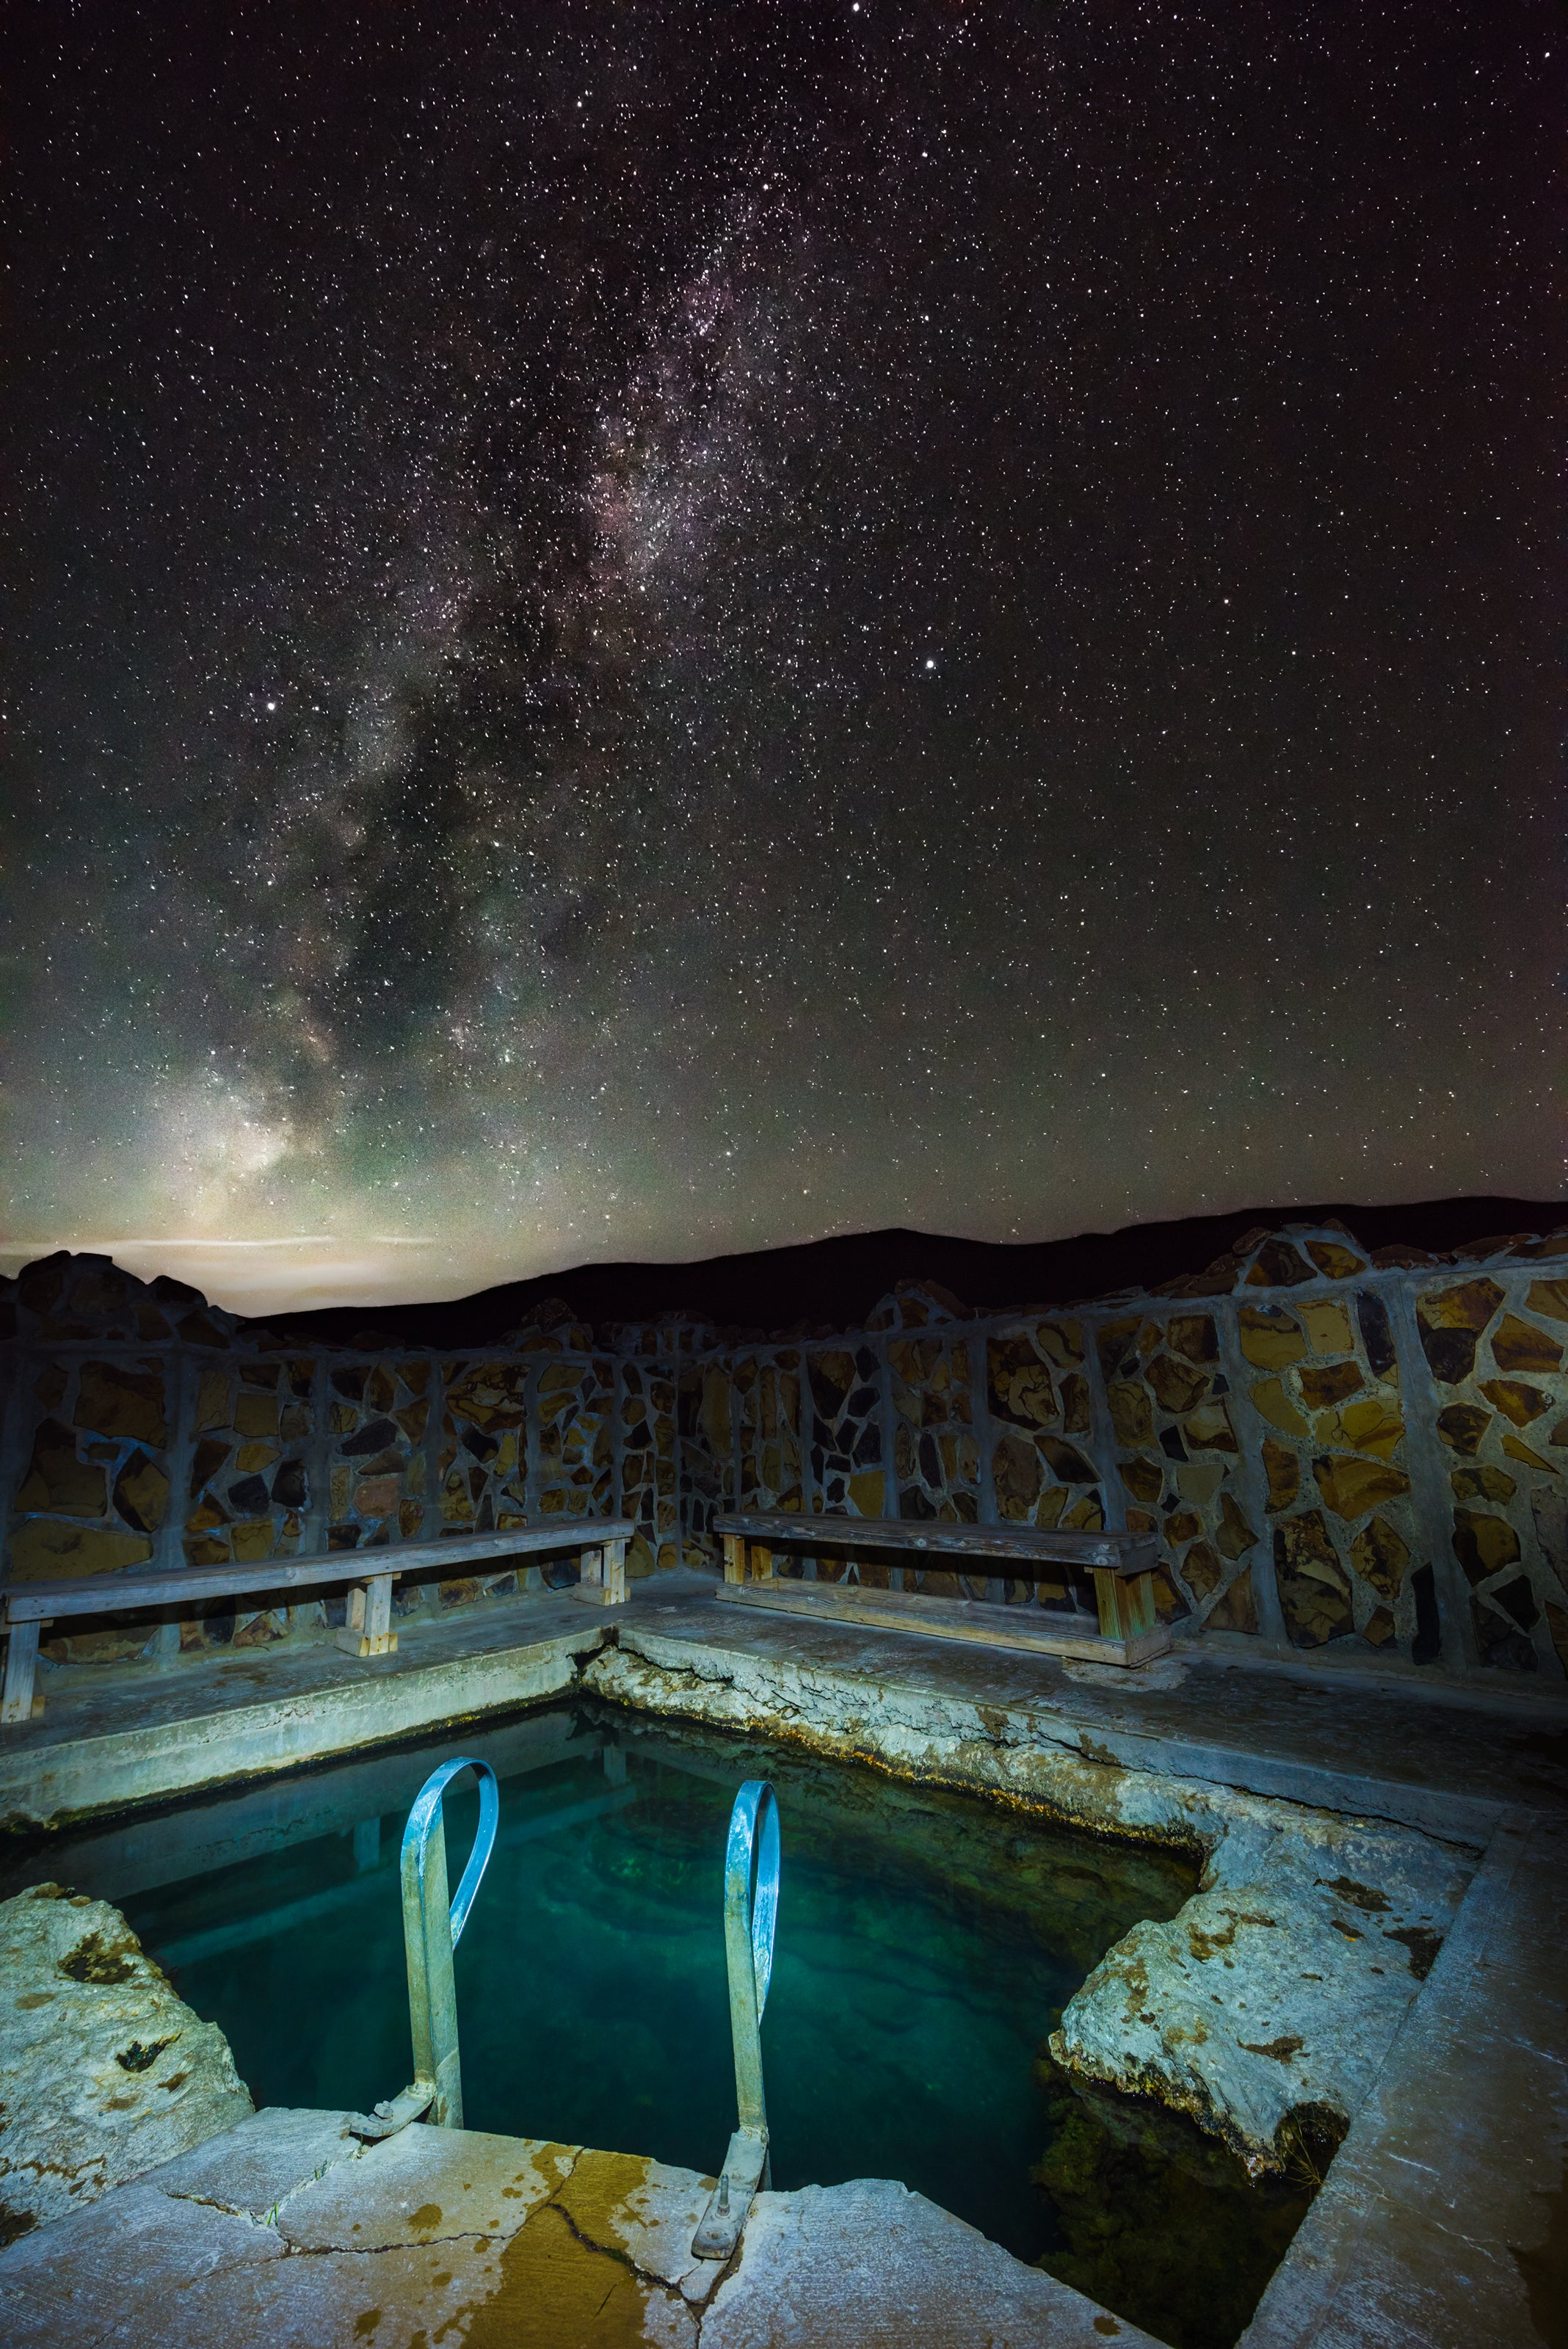 Hot springs at night under the star filled sky with a ladder and brick pool.